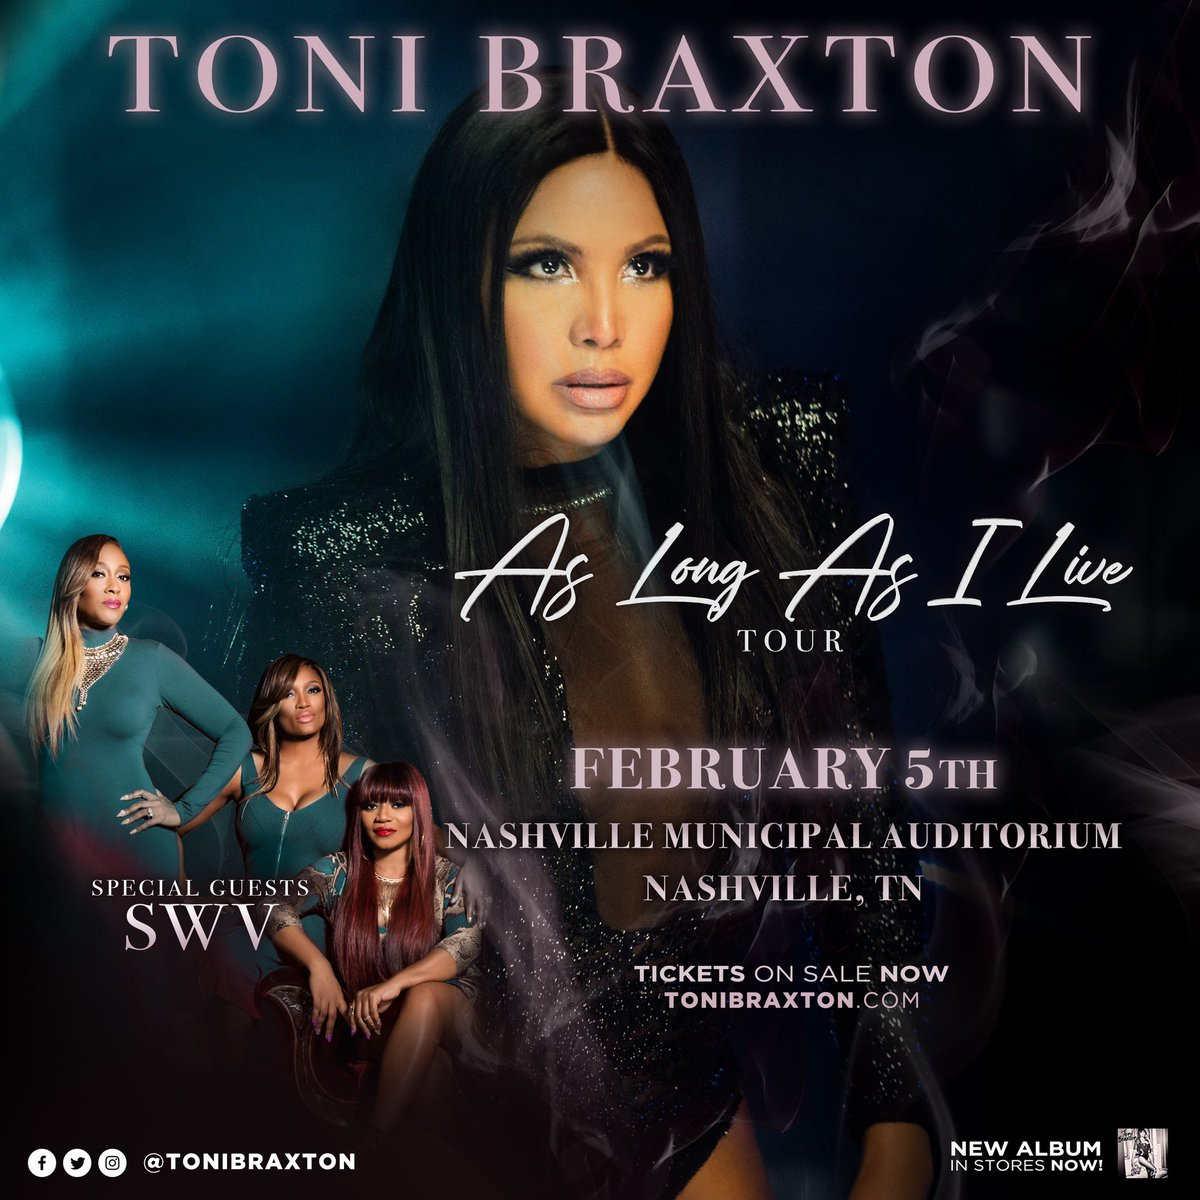 NASHVILLE, TN! Tickets are still available, so don't miss out! ????https://t.co/Tf0JyD1XKh #AsLongAsILiveTour https://t.co/m0dCUbkZU3